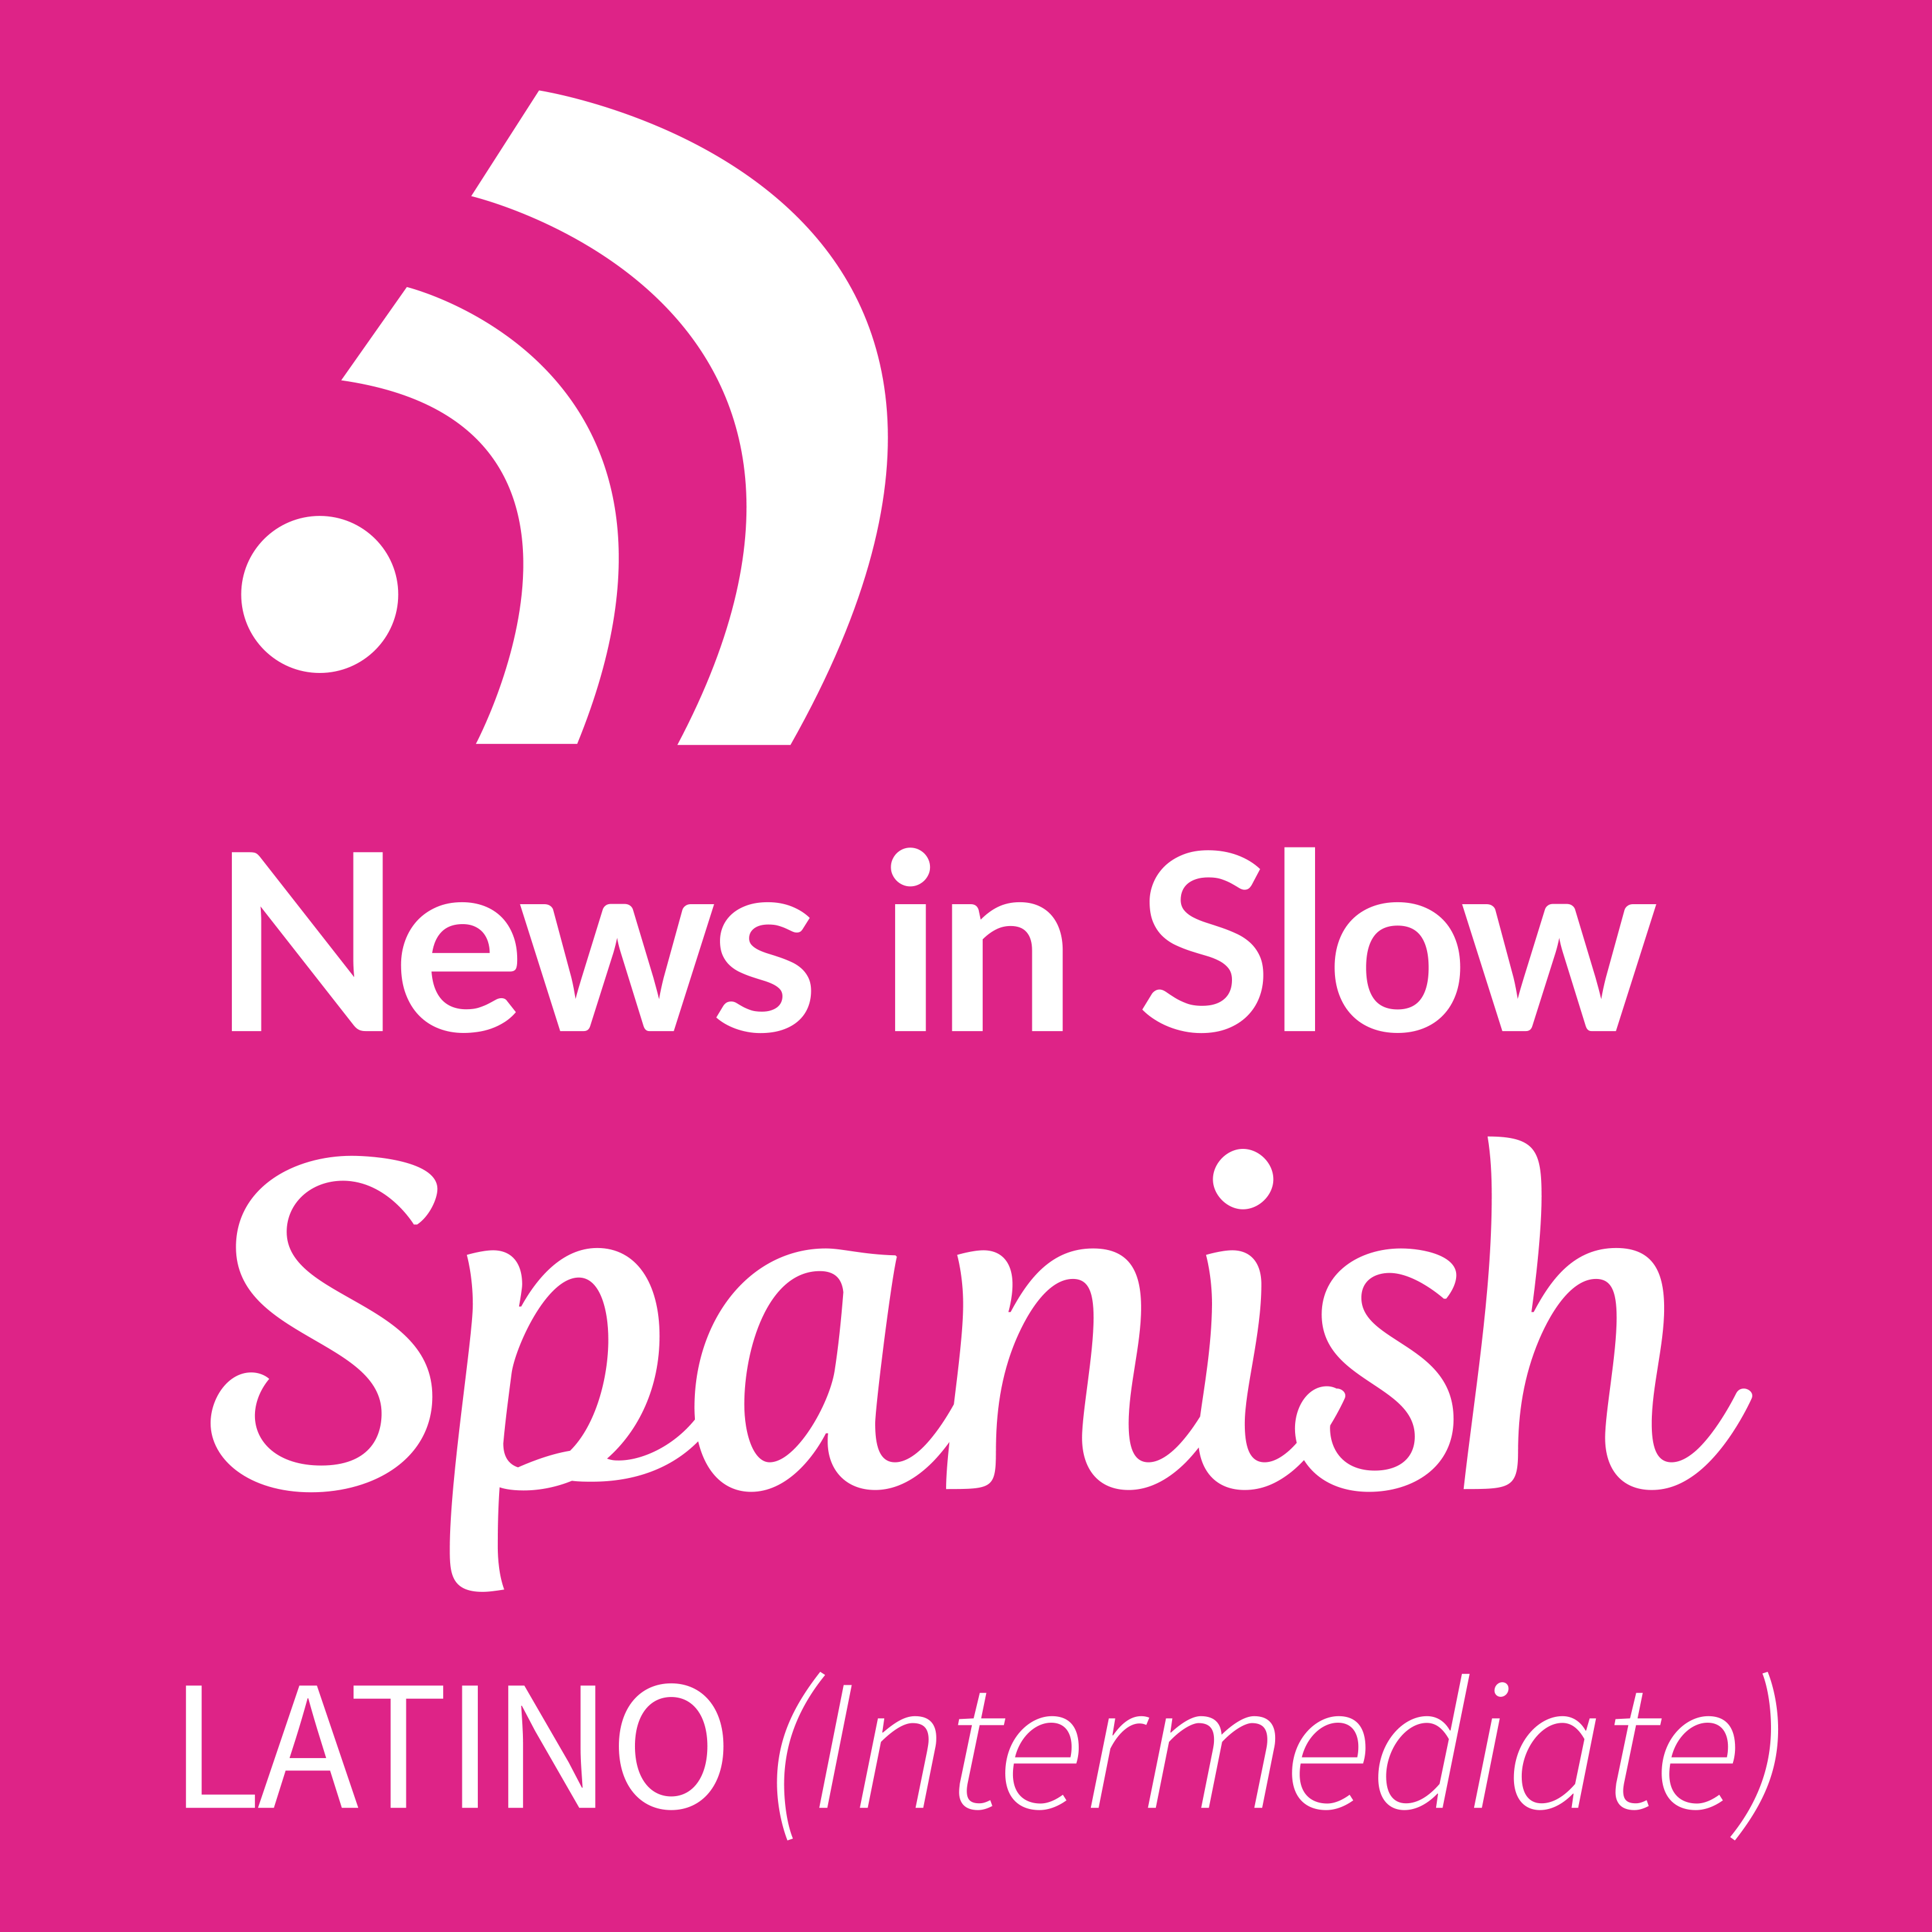 News in Slow Spanish Latino - # 177 - Learn Spanish through current events